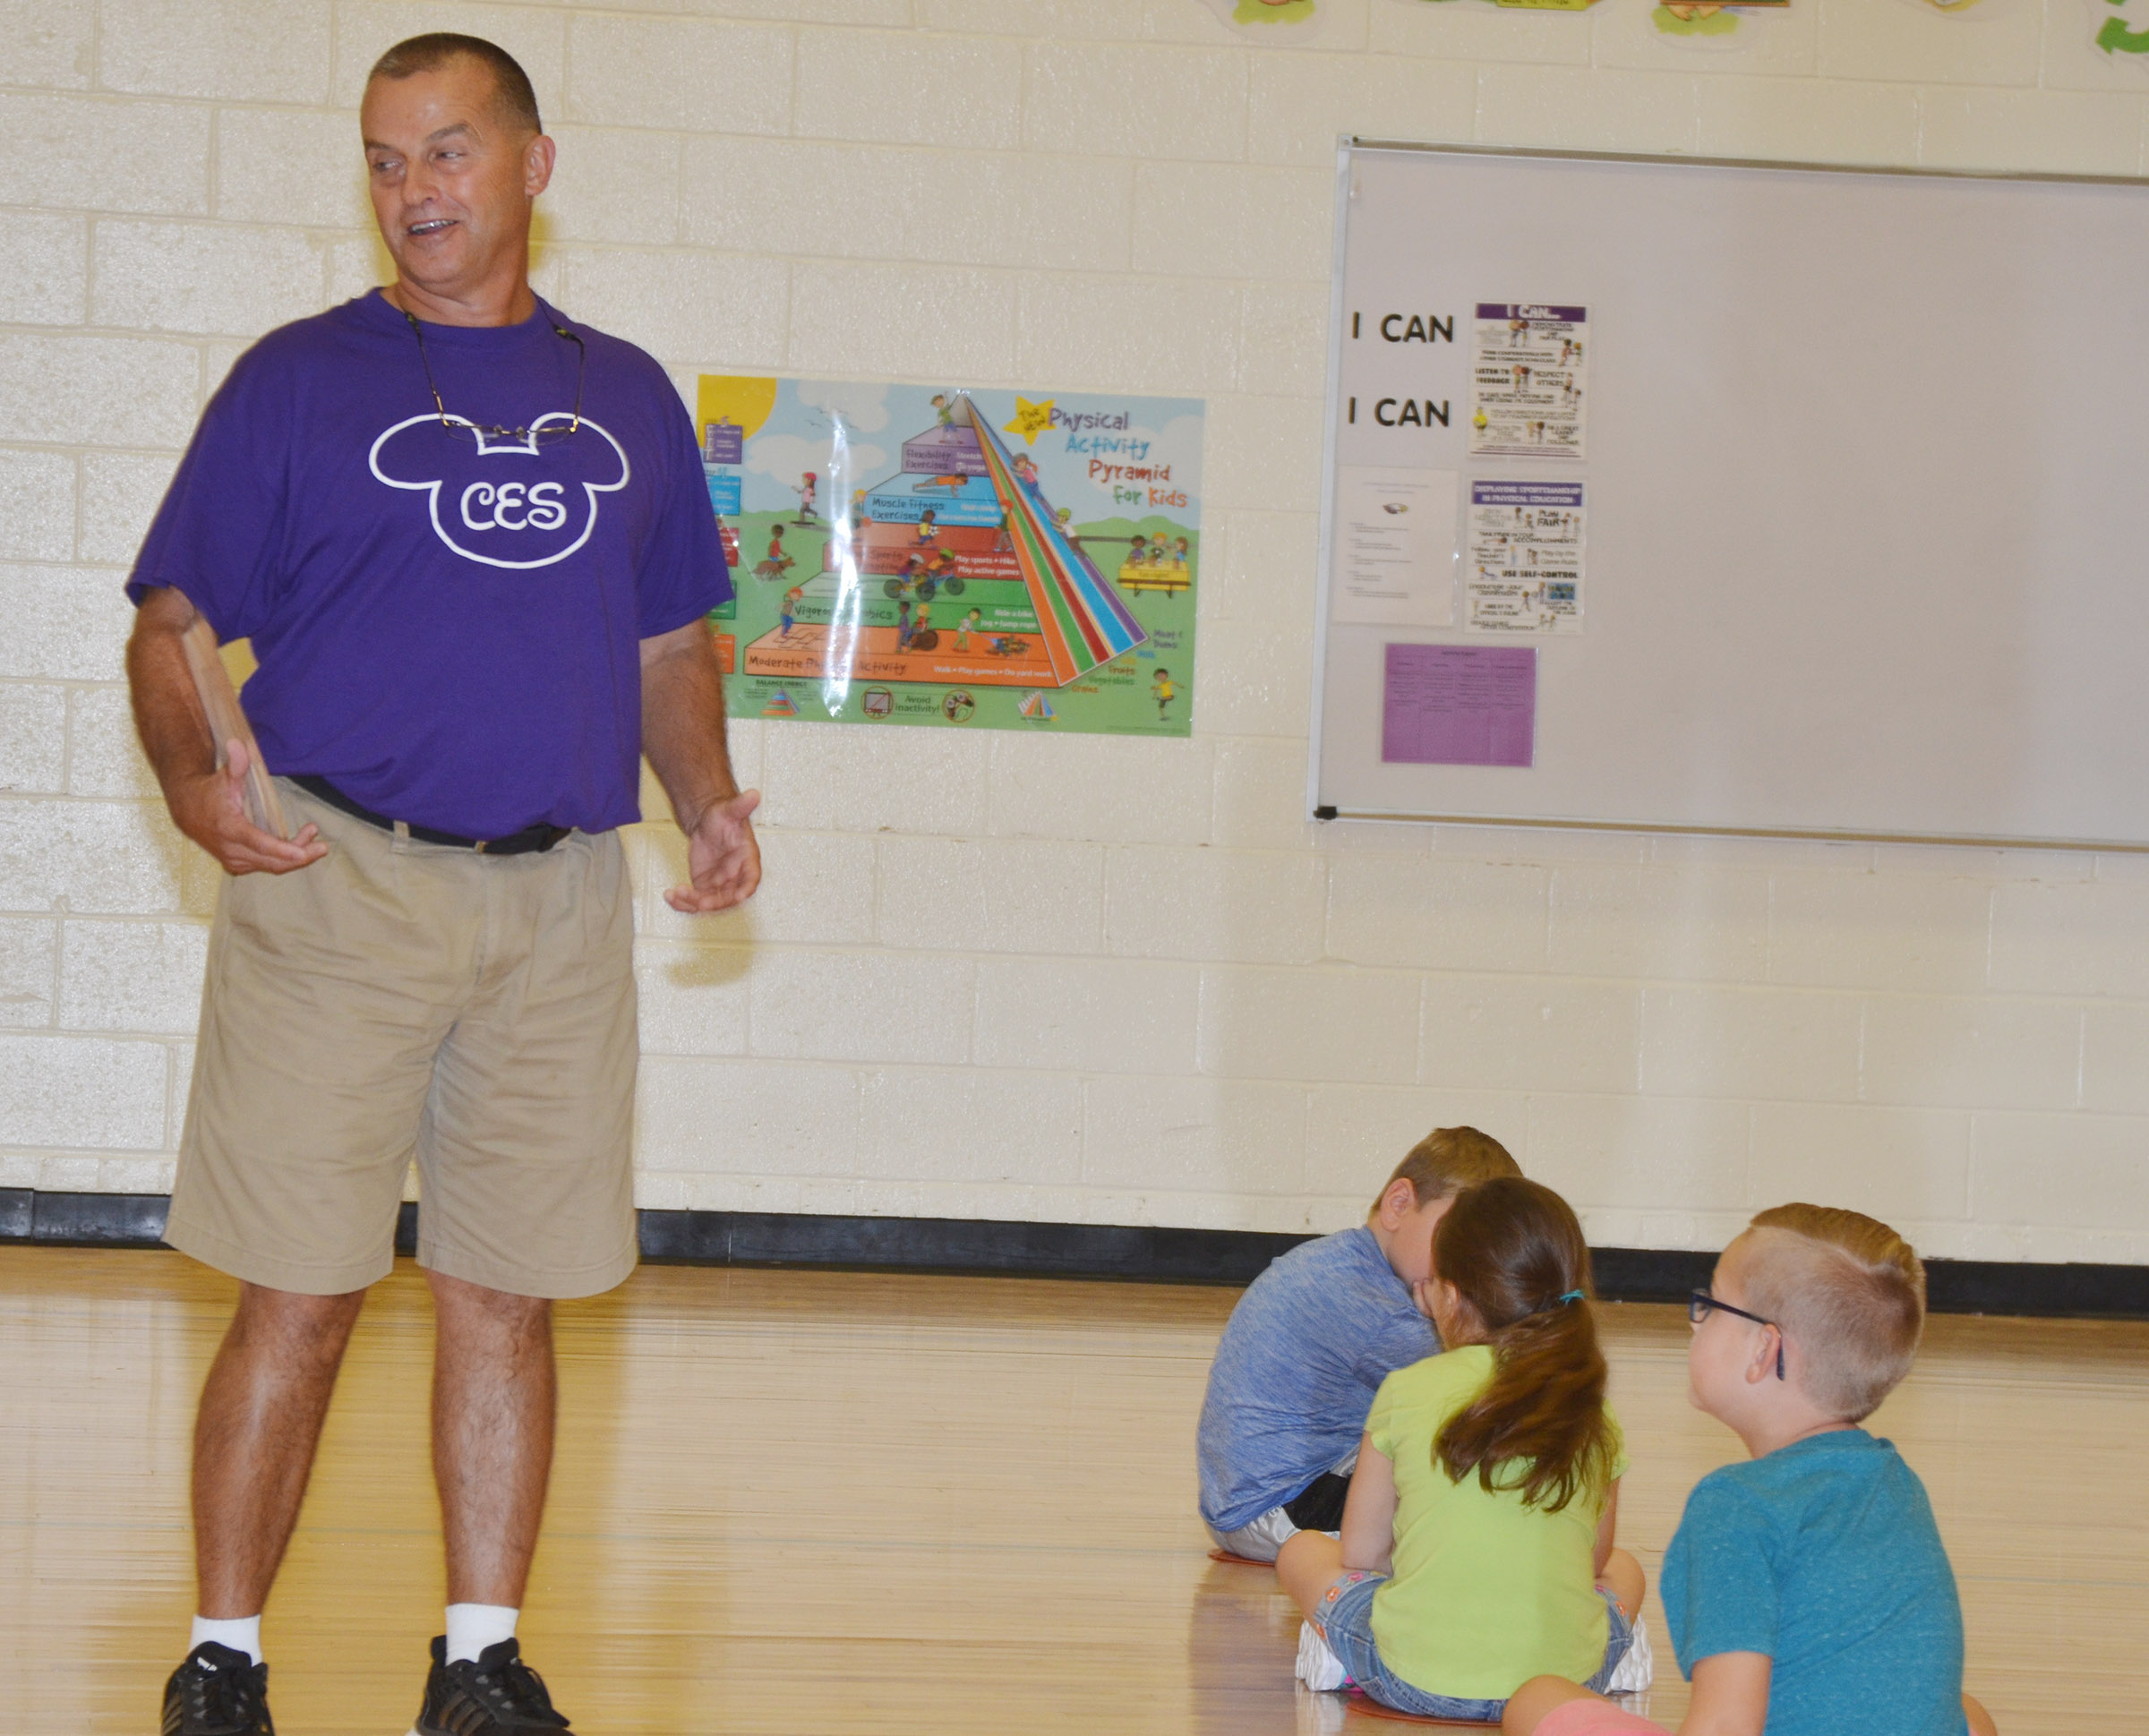 CES physical education teacher Lynn Kearney talks to his students.